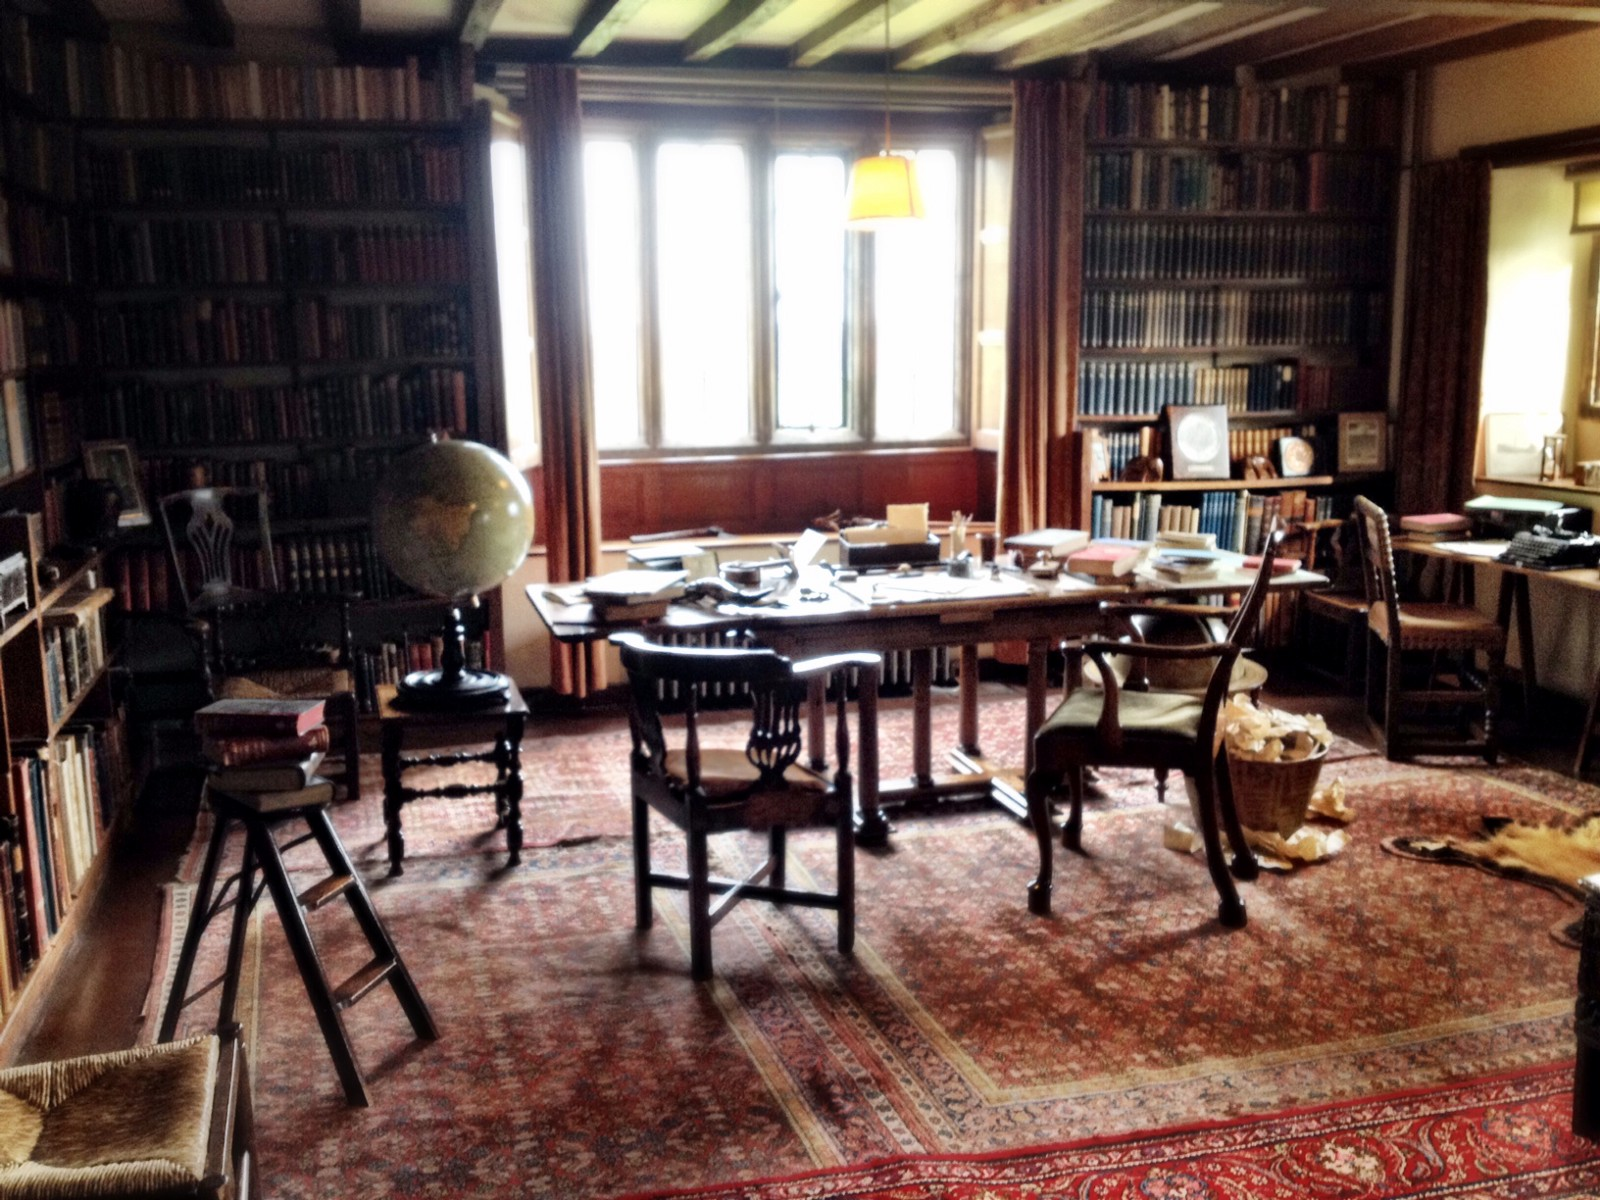 Large Windows Over Rudyard Kiplings Desk In His Writing Study